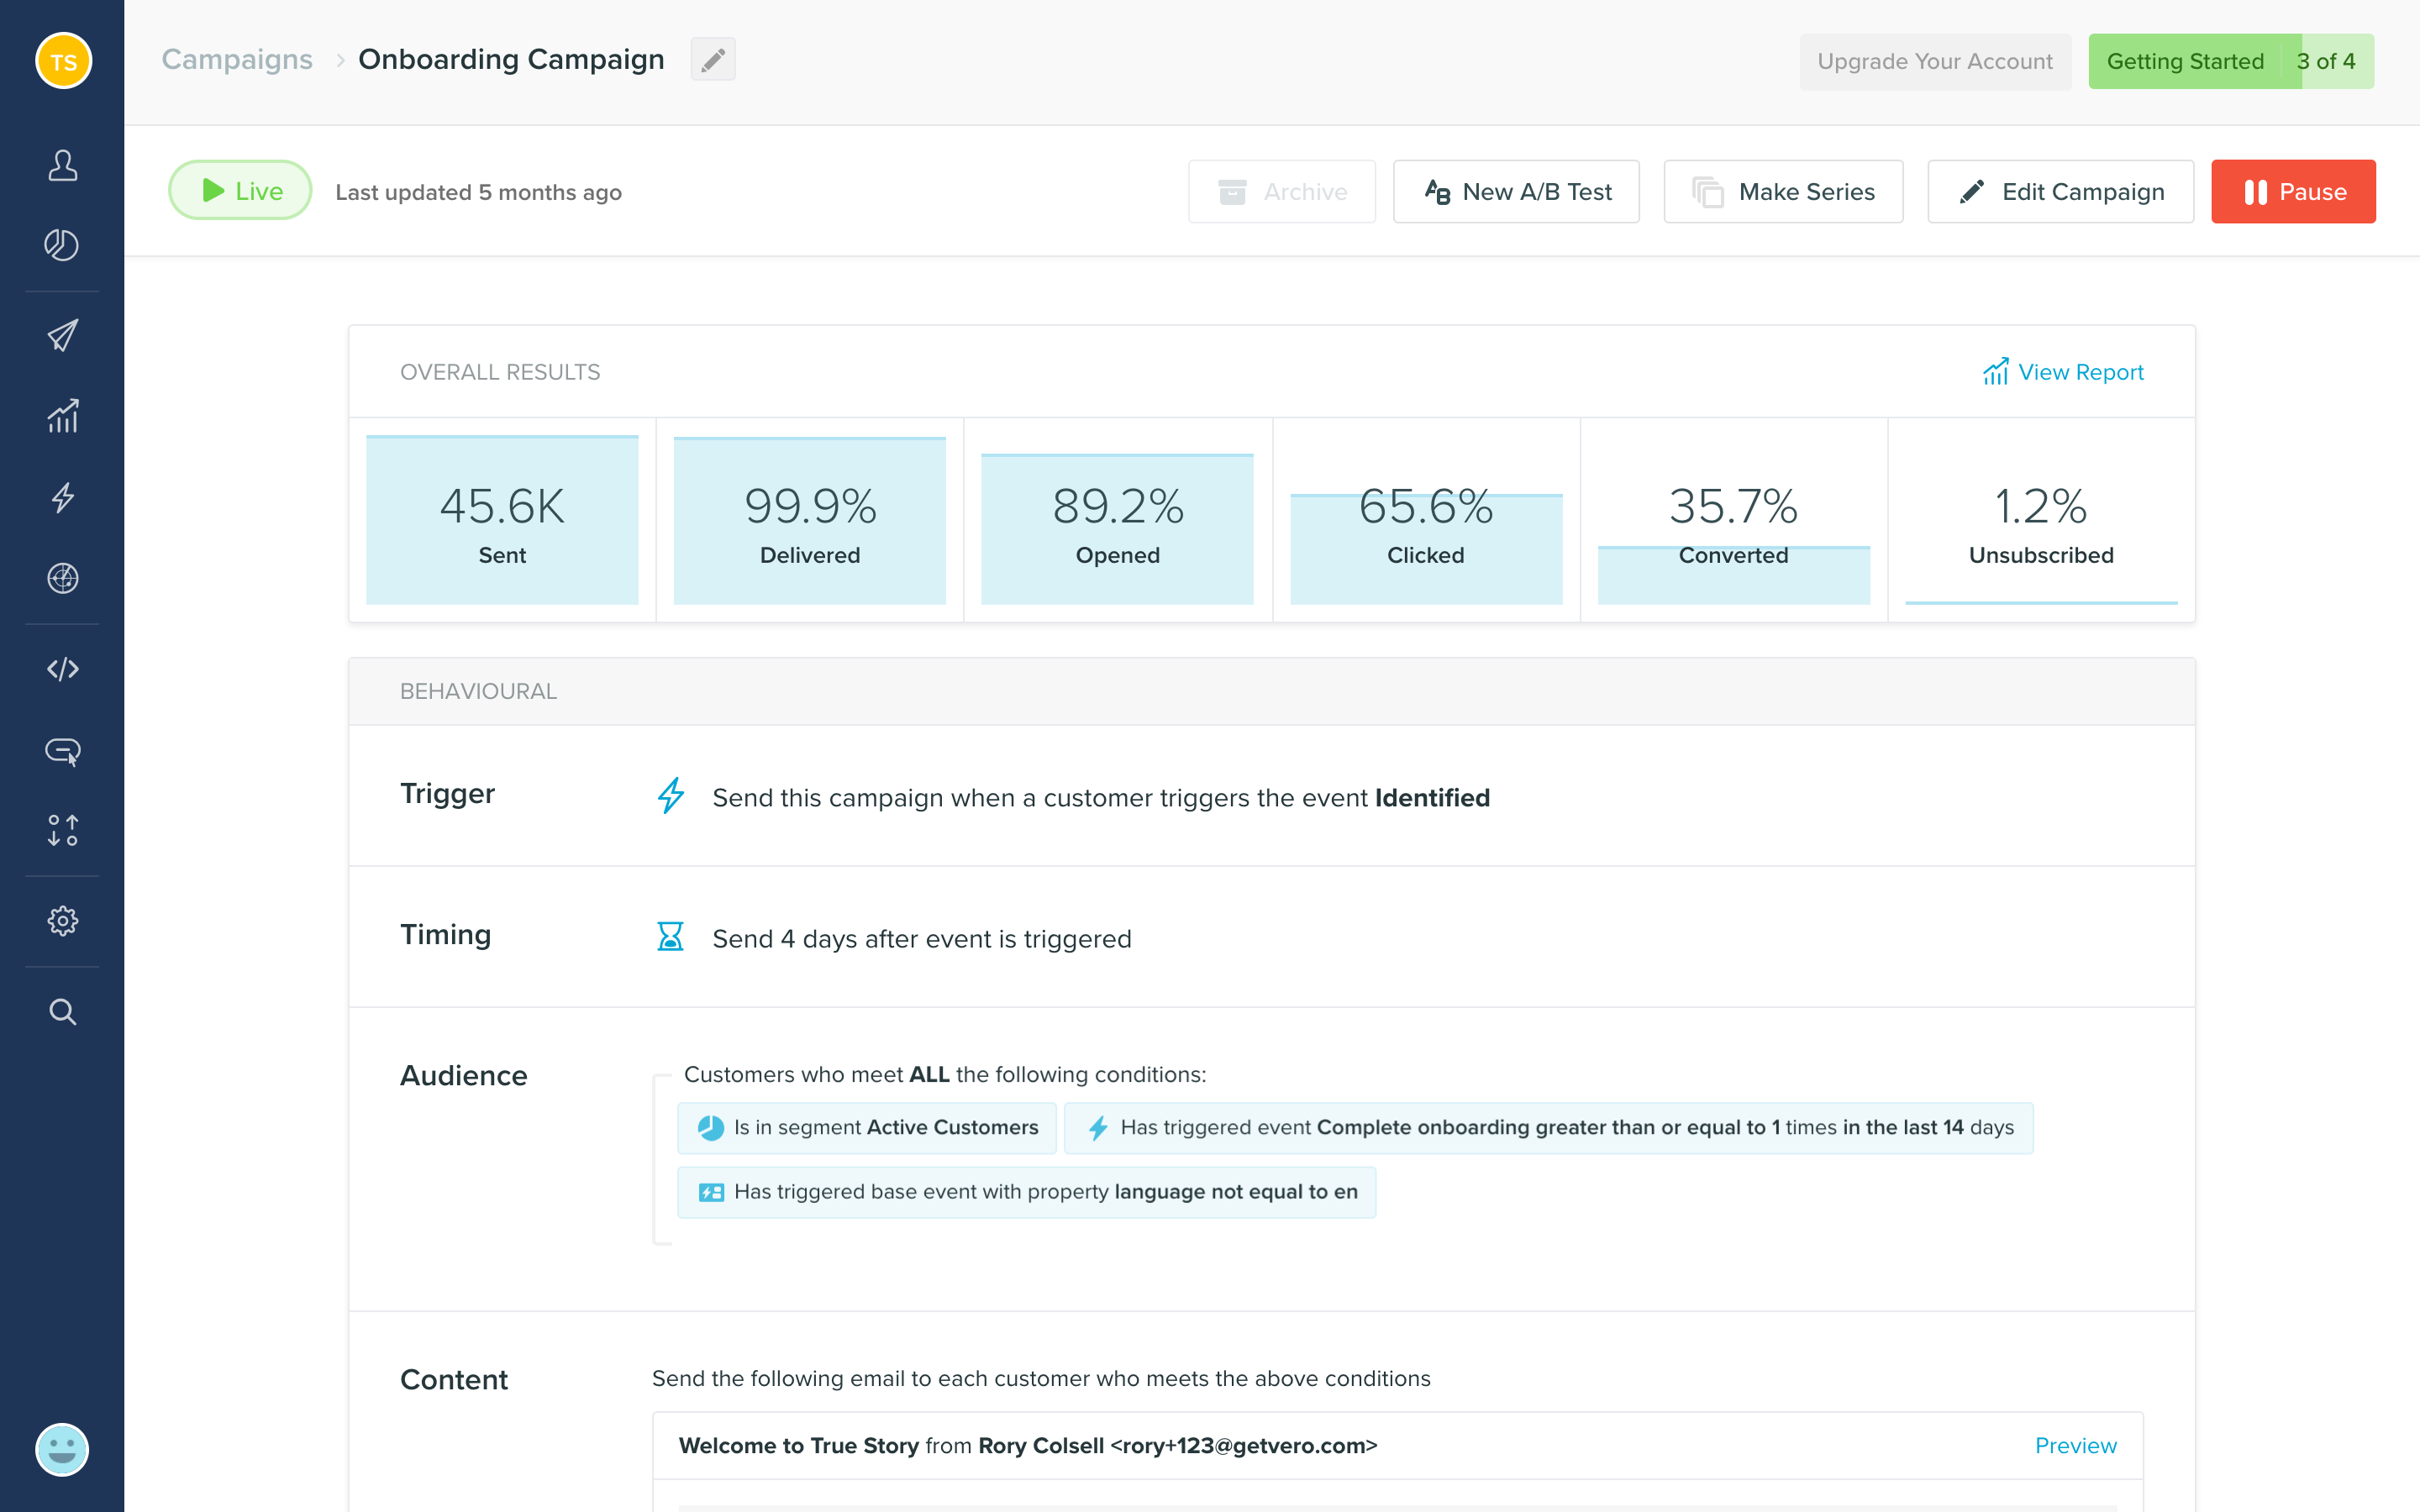 Build automated emails with newsletters and transactional, behavioral, and A/B test workflows.